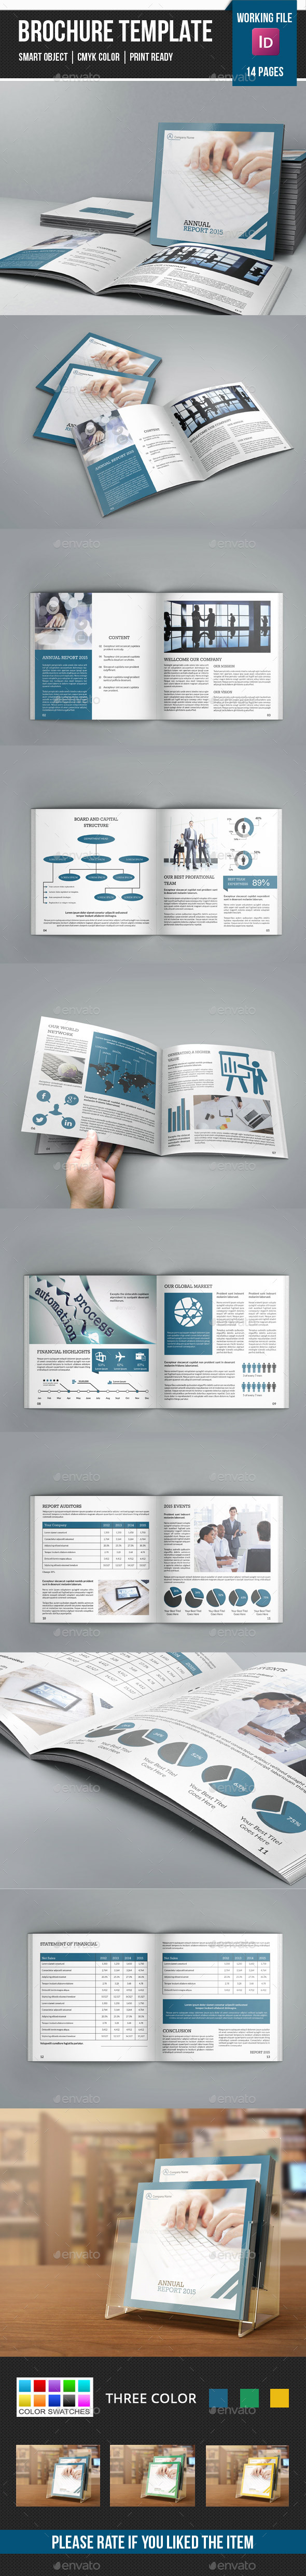 GraphicRiver Square Annual Report Brochure-V240 11210744